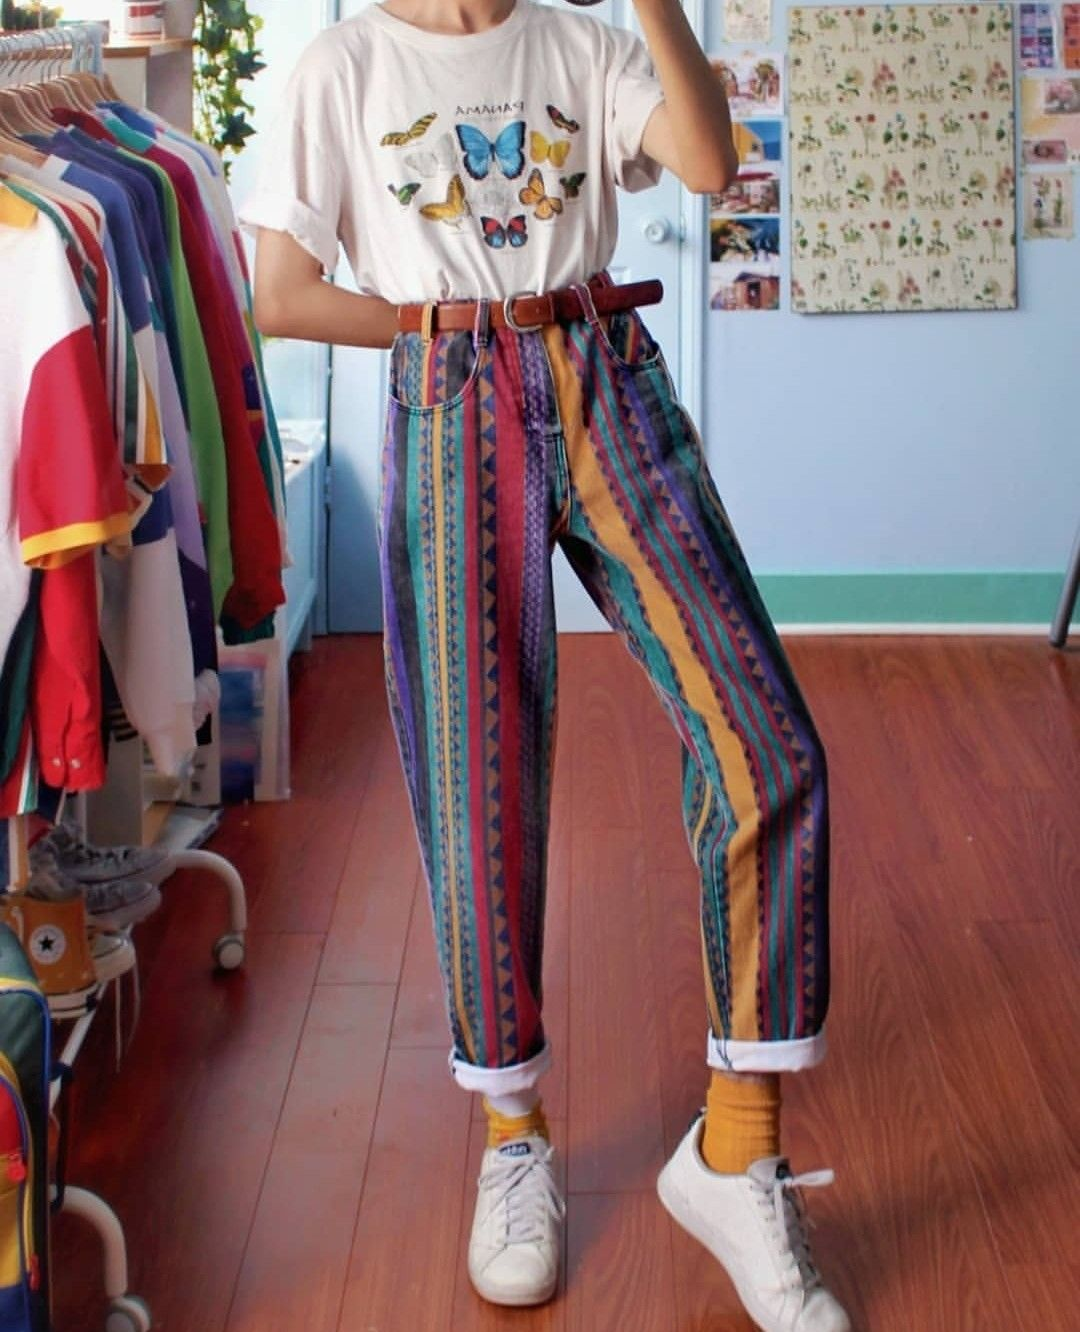 Colorful Jeans With A Butterfly T Shirt Thrift Store Aesthetic Vintage Clothing Boho Inspiration In 2020 Vintage Summer Outfits Retro Outfits Vintage Outfits